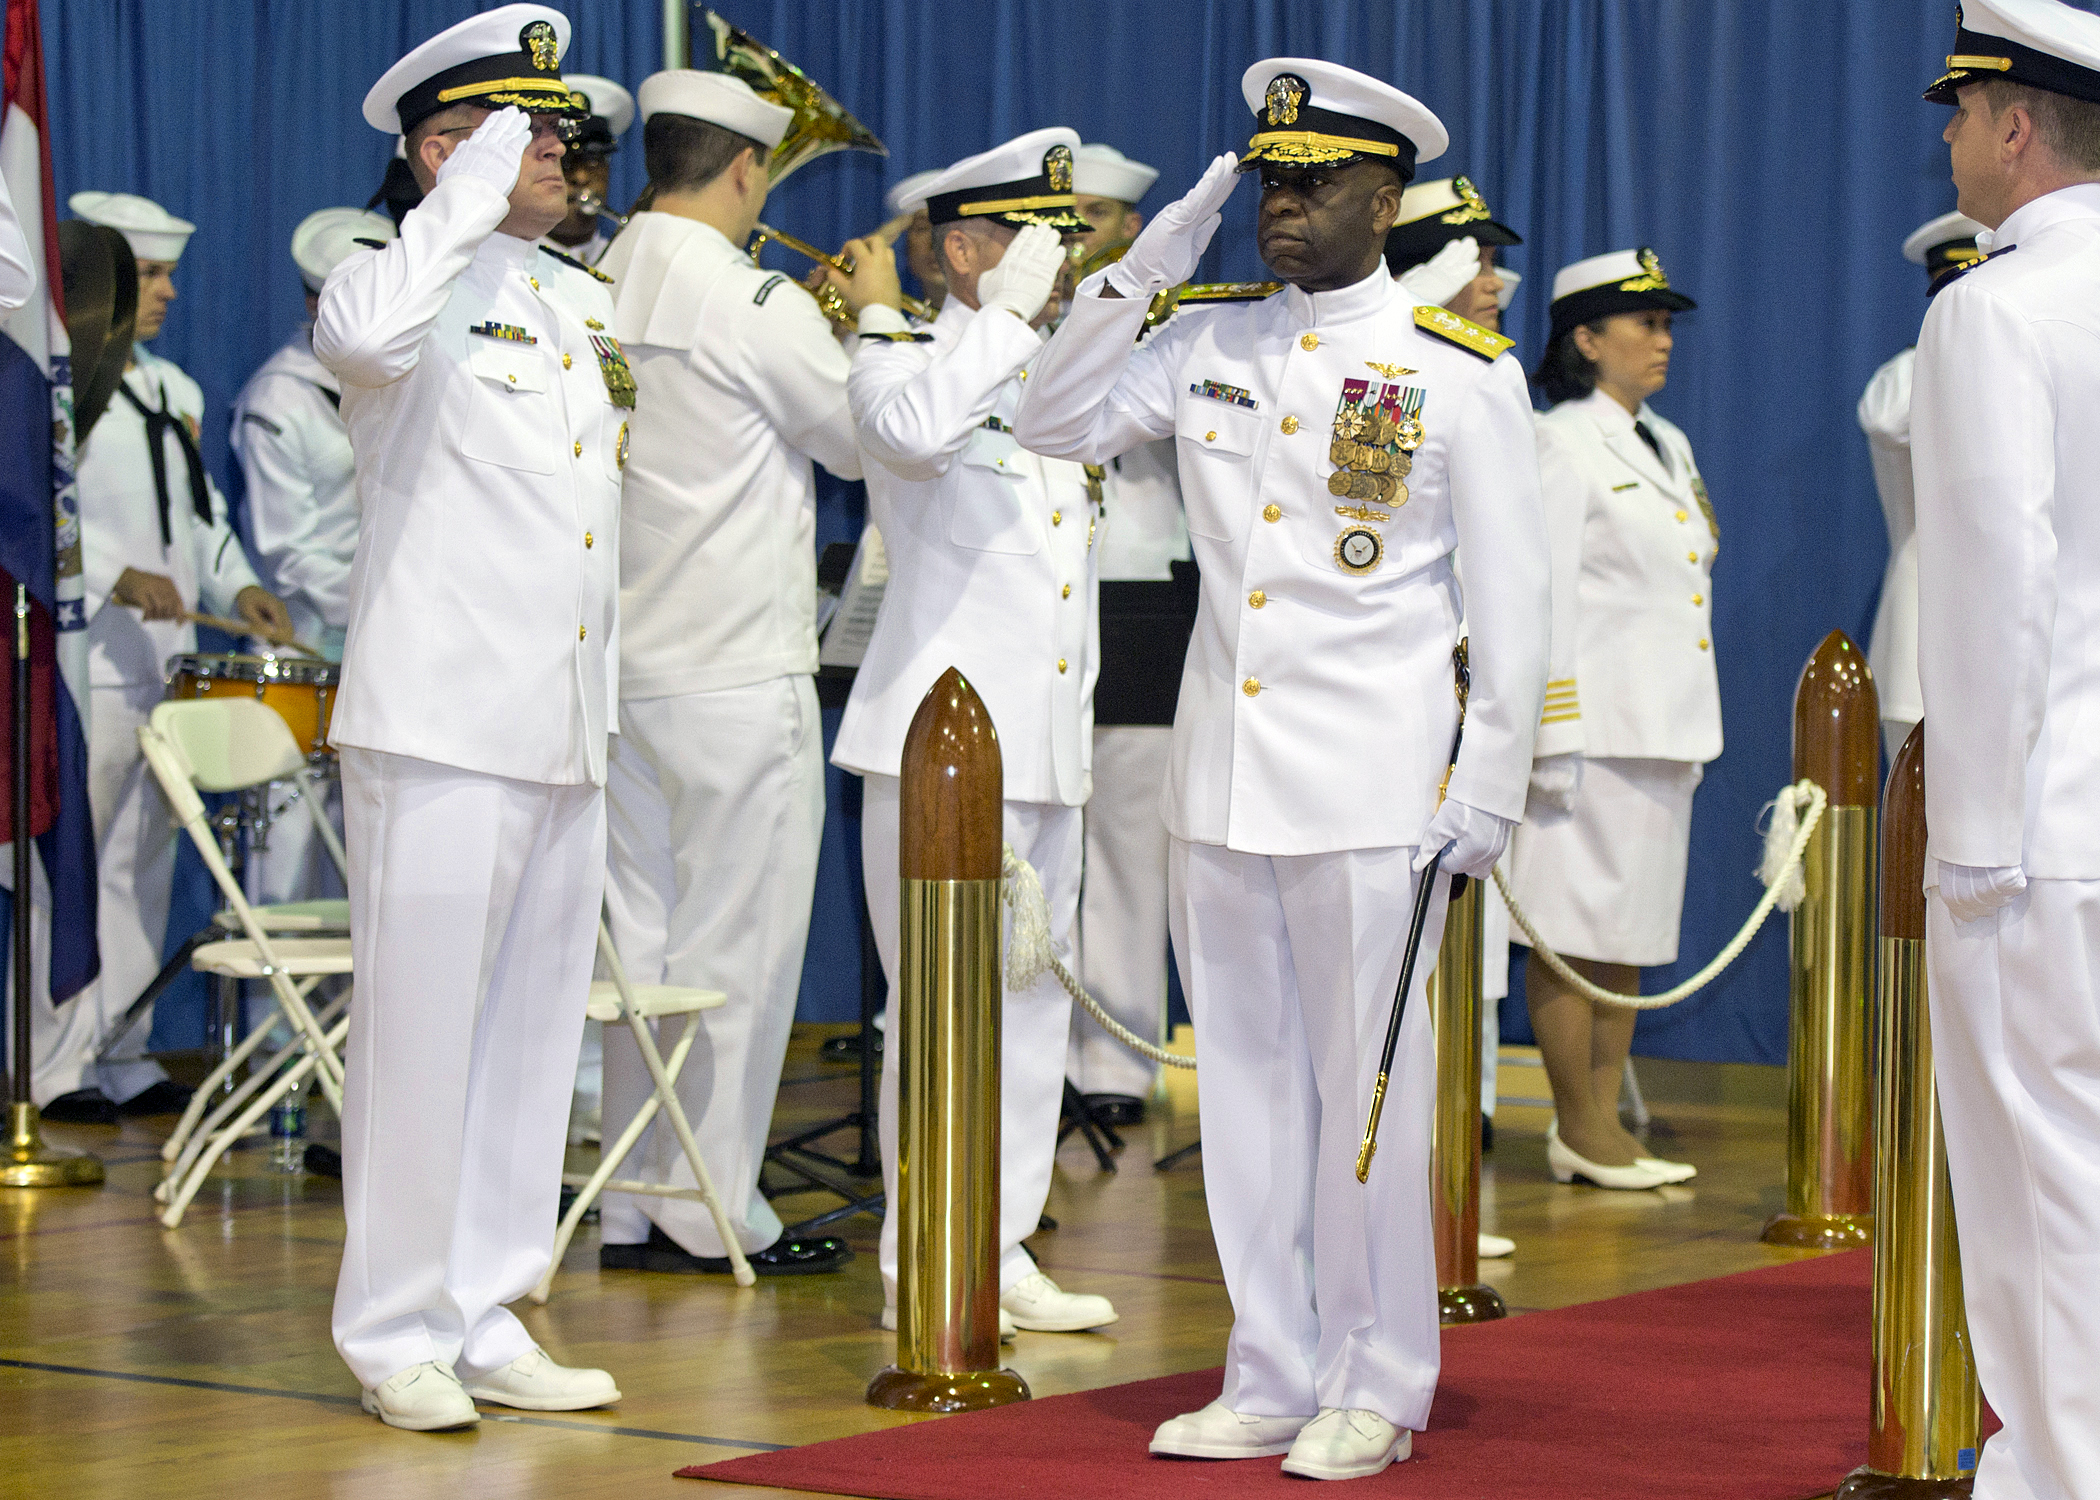 Admiral Earl Gay salutes in uniform.